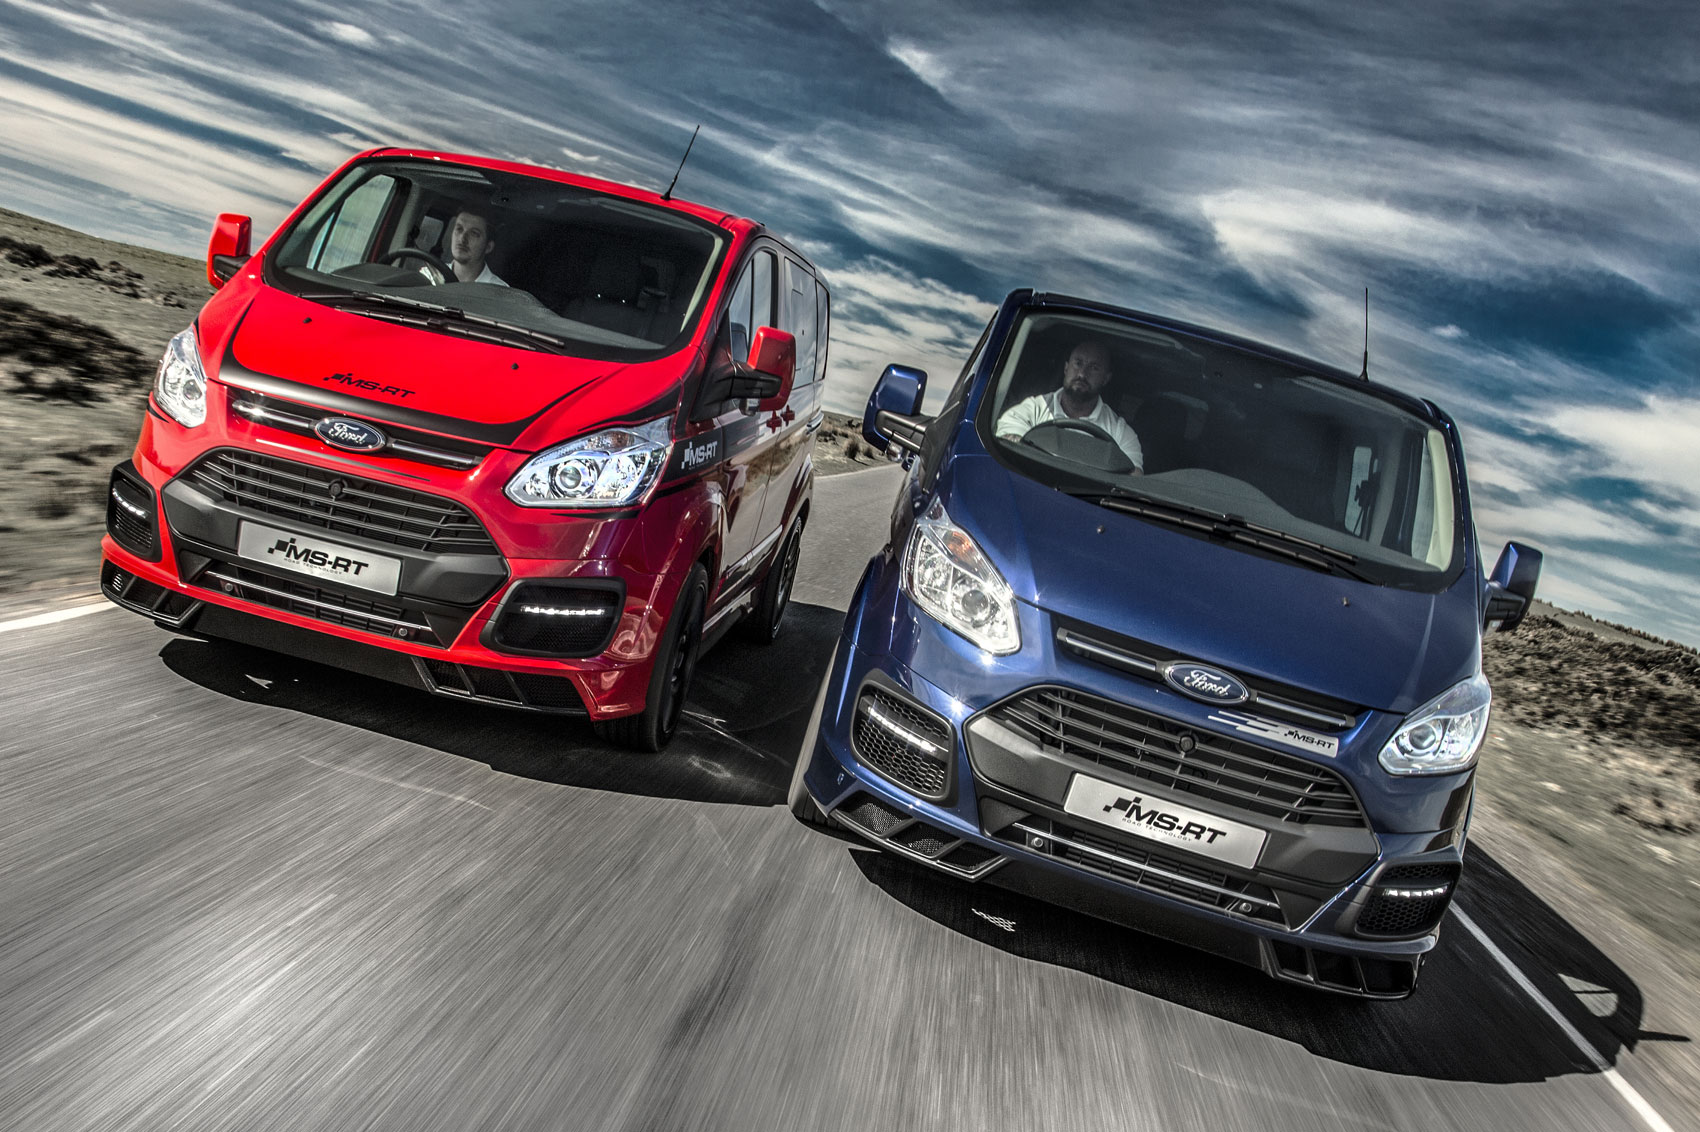 2016 Ford Transit >> Ford Transit M-Sport vans and Ranger pickup renamed MS-RT | Parkers